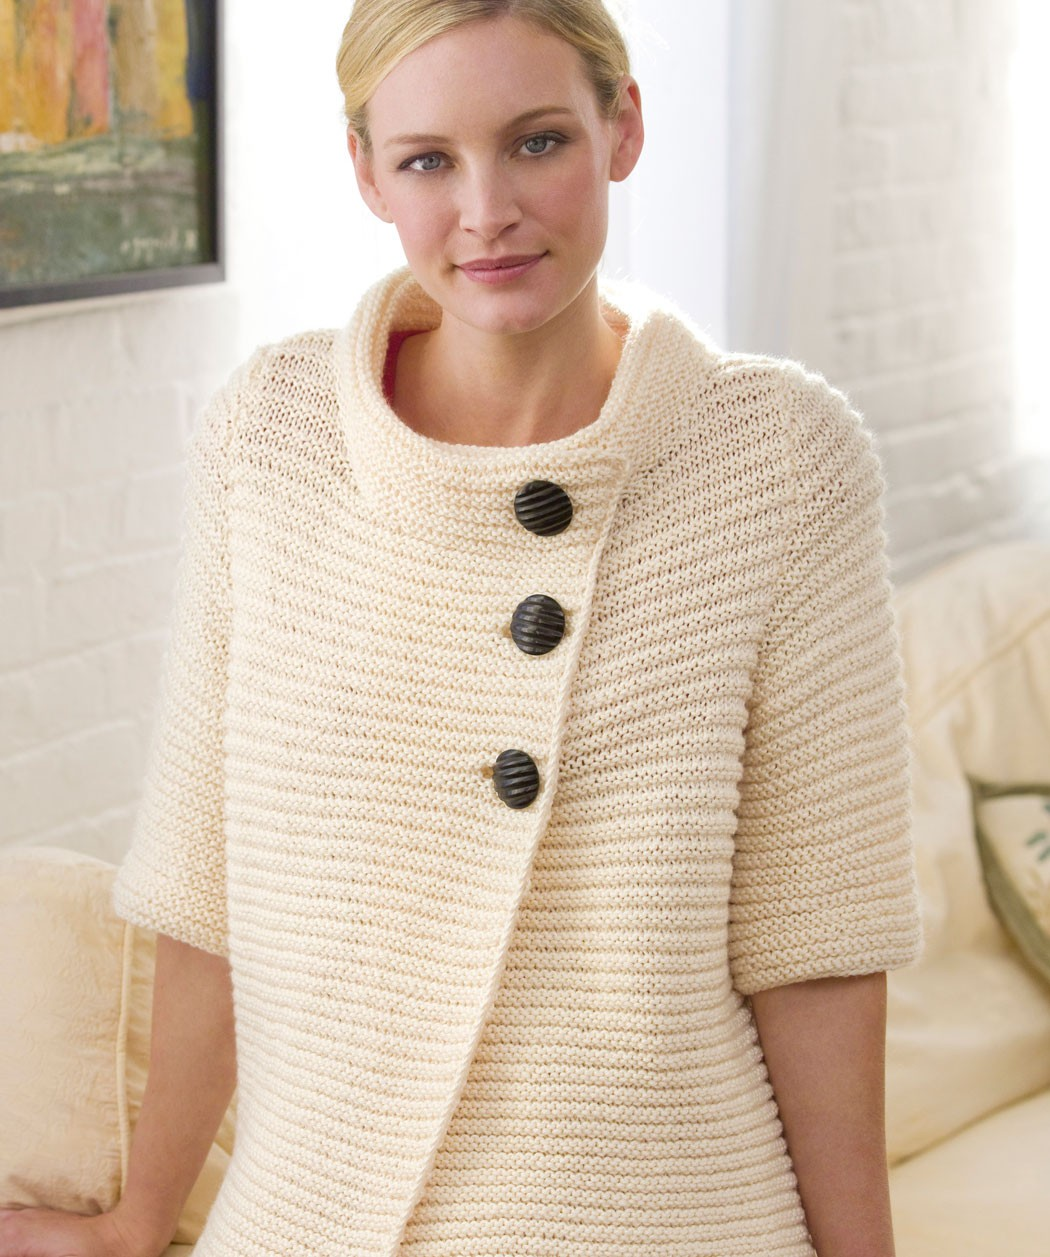 Knitted Jacket Pattern : Knitted Sweater Patterns for Women A Knitting Blog